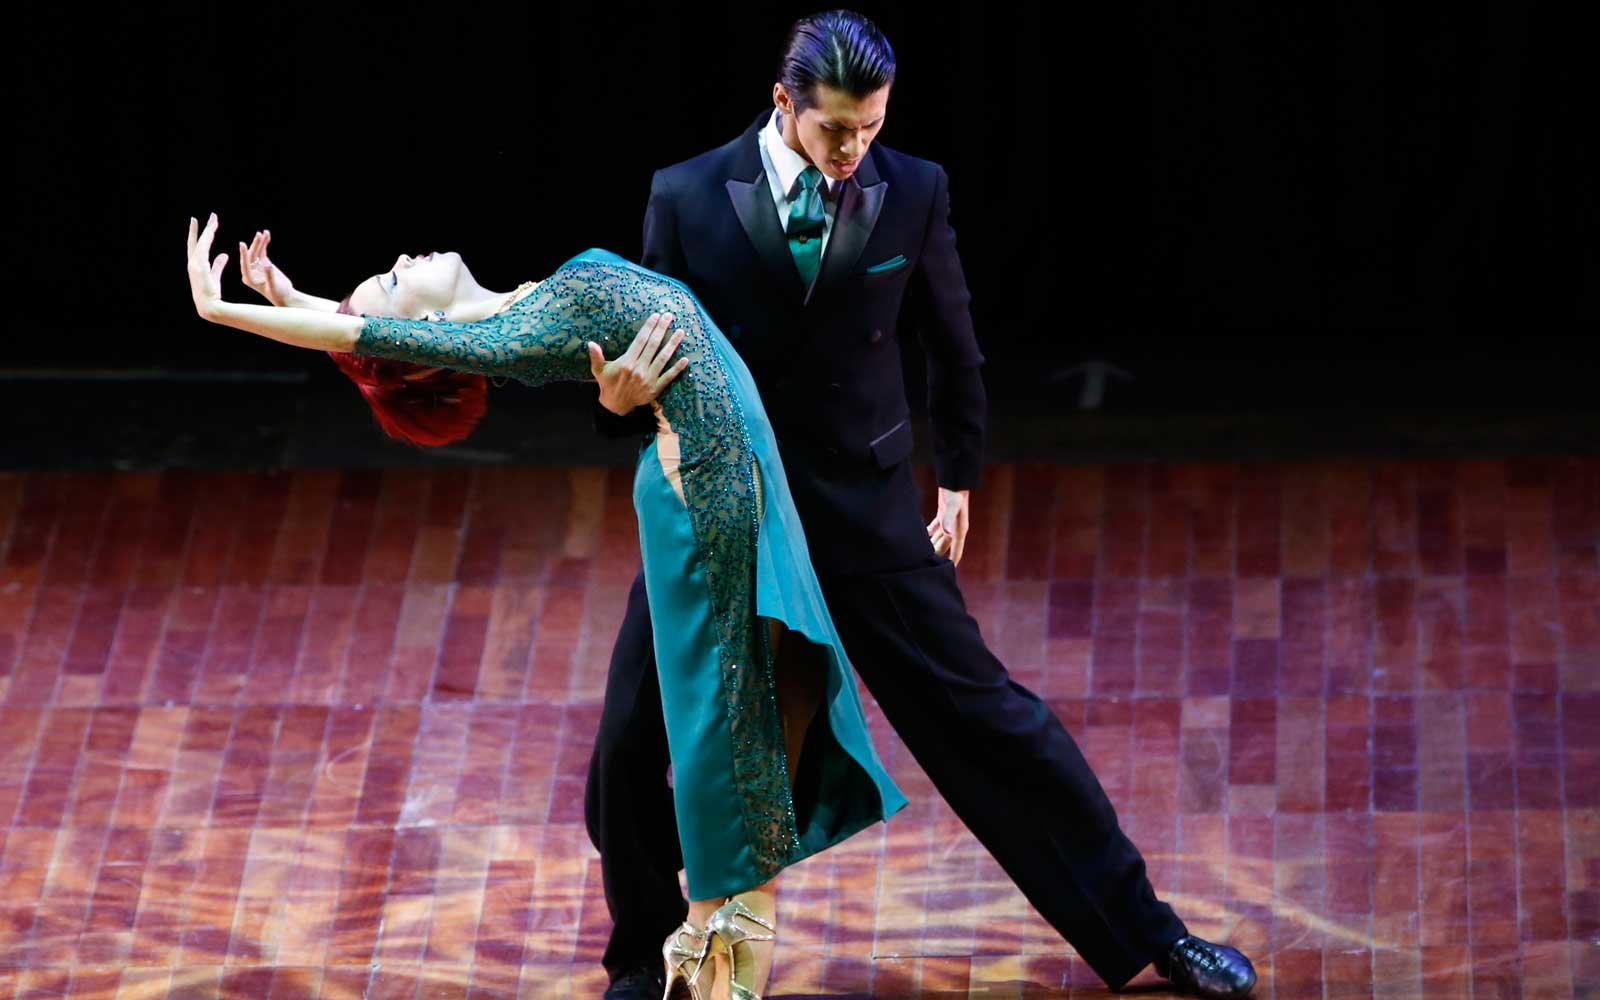 Buenos Aires Tango Festival & World Championship 2016